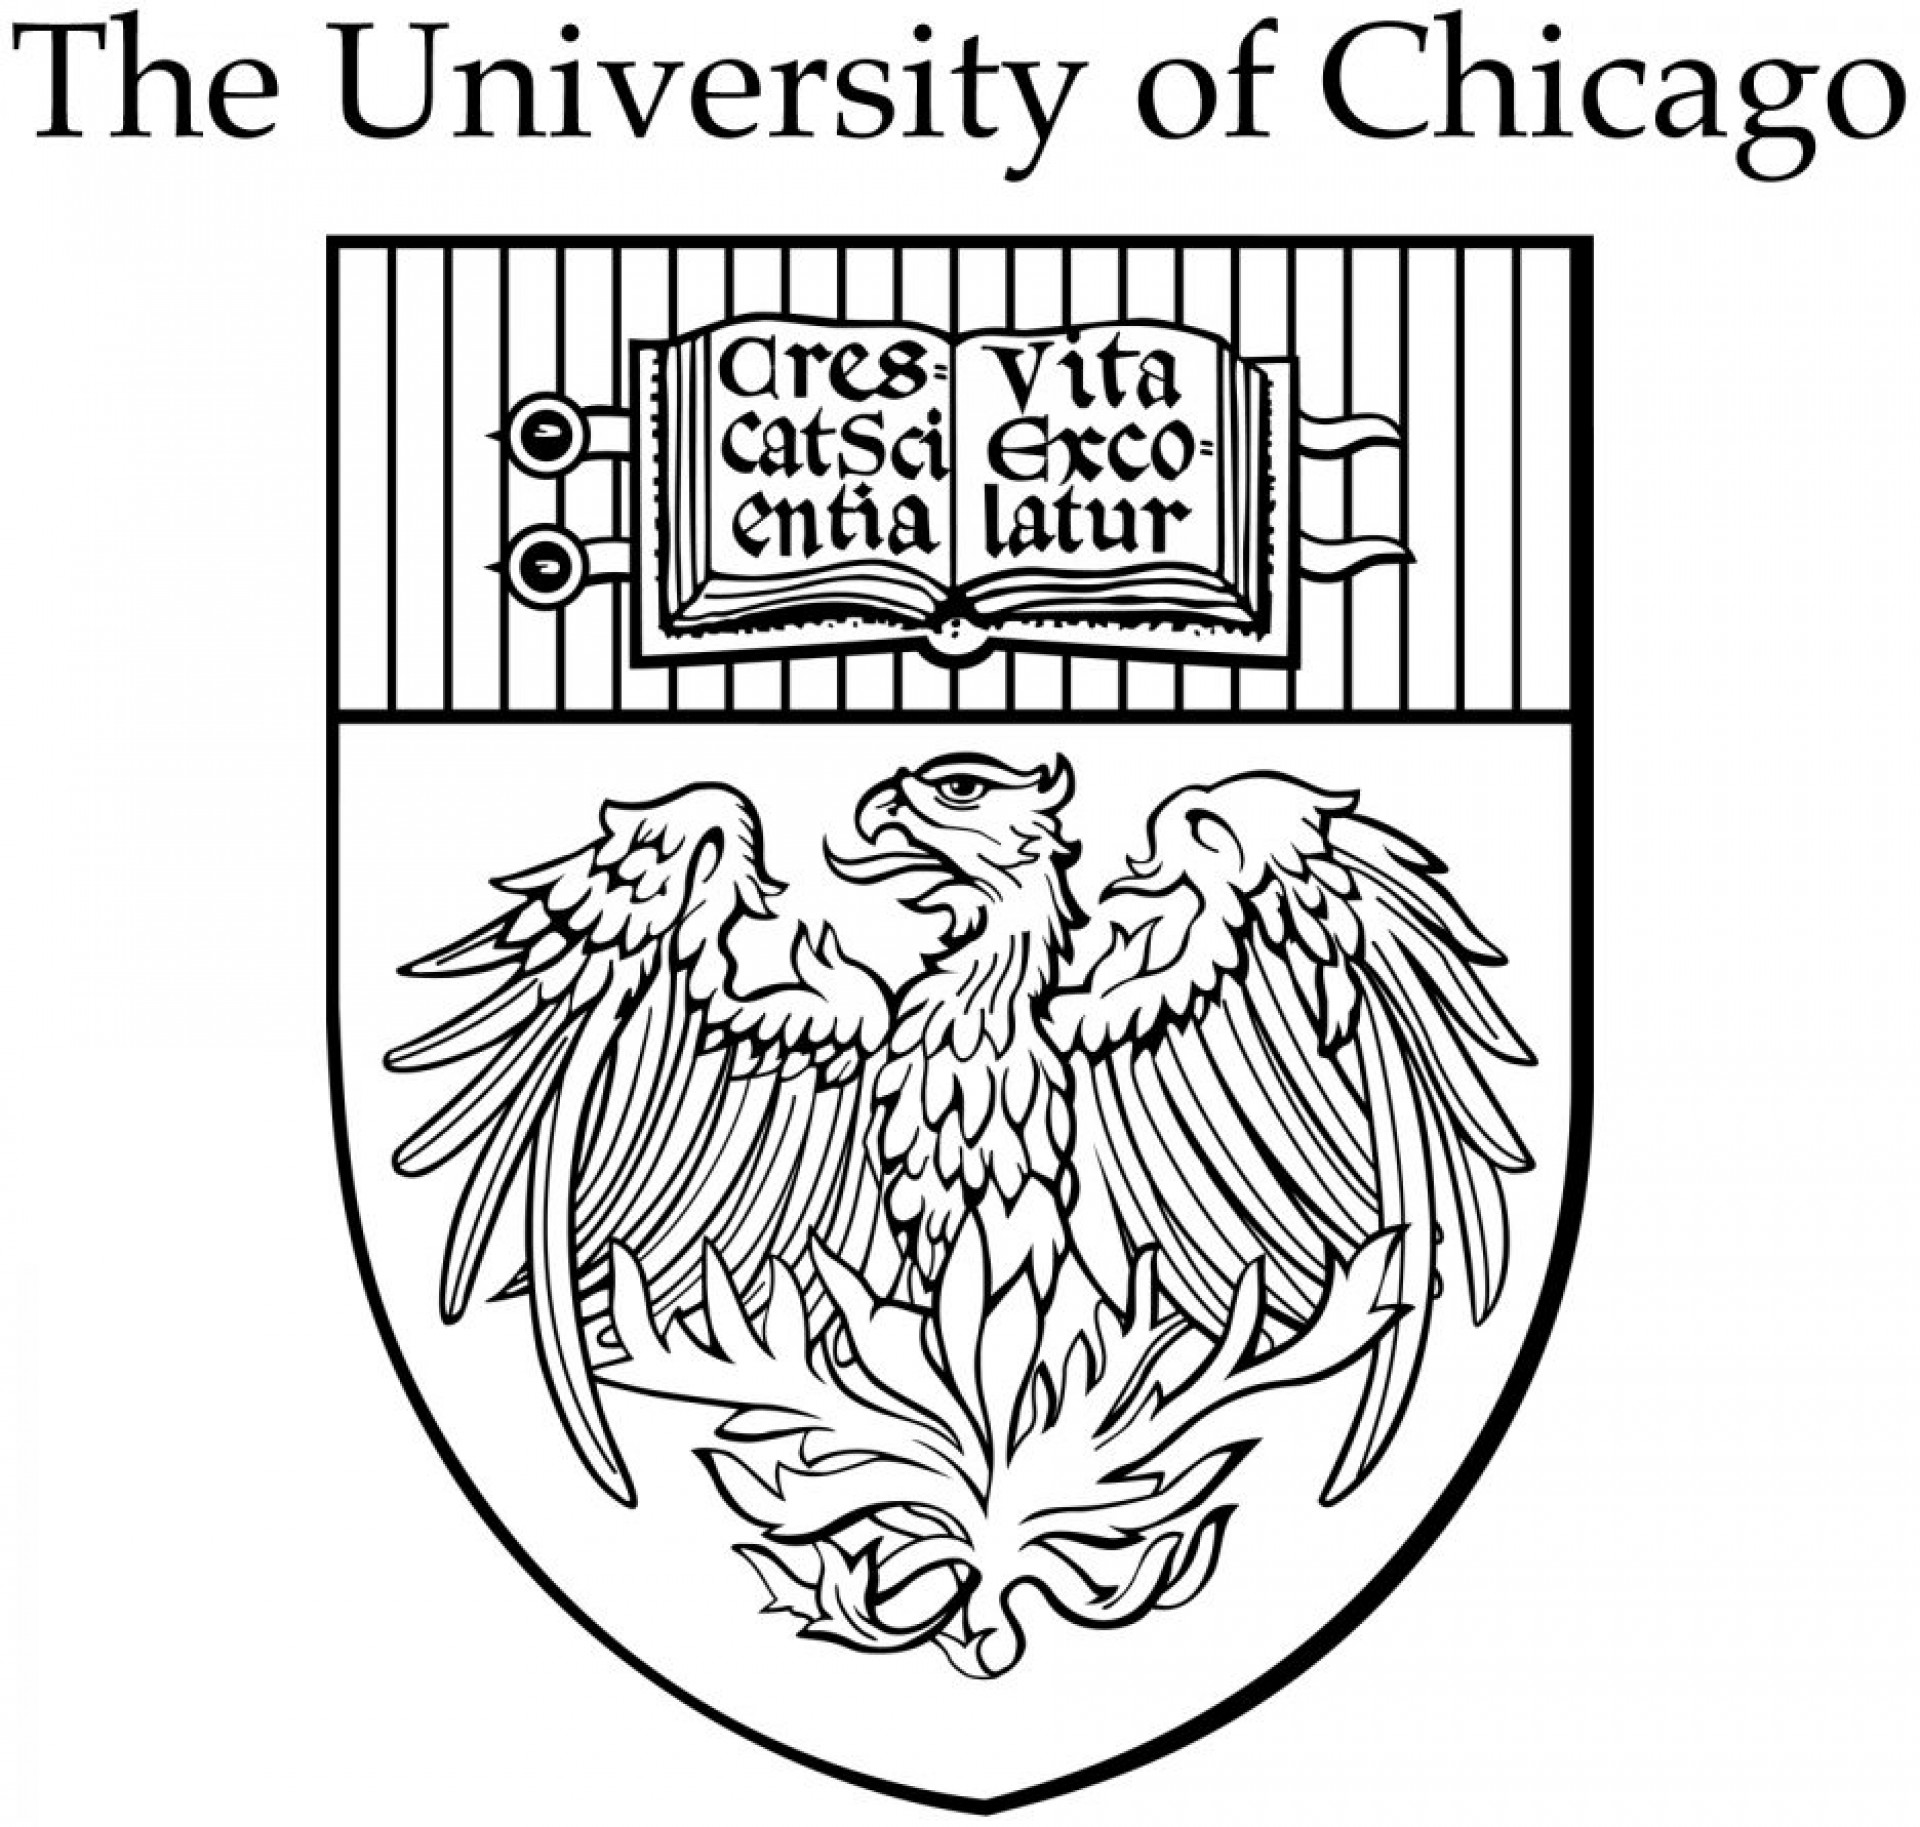 012 University Chicago Admissions Essays Ivy Coach Example Uchicago Accepted Samples Past That Worked Best Successful Great Word Limit Sample College Confidential Examples Length 936x891 Unusual Of Essay Prompts 1920